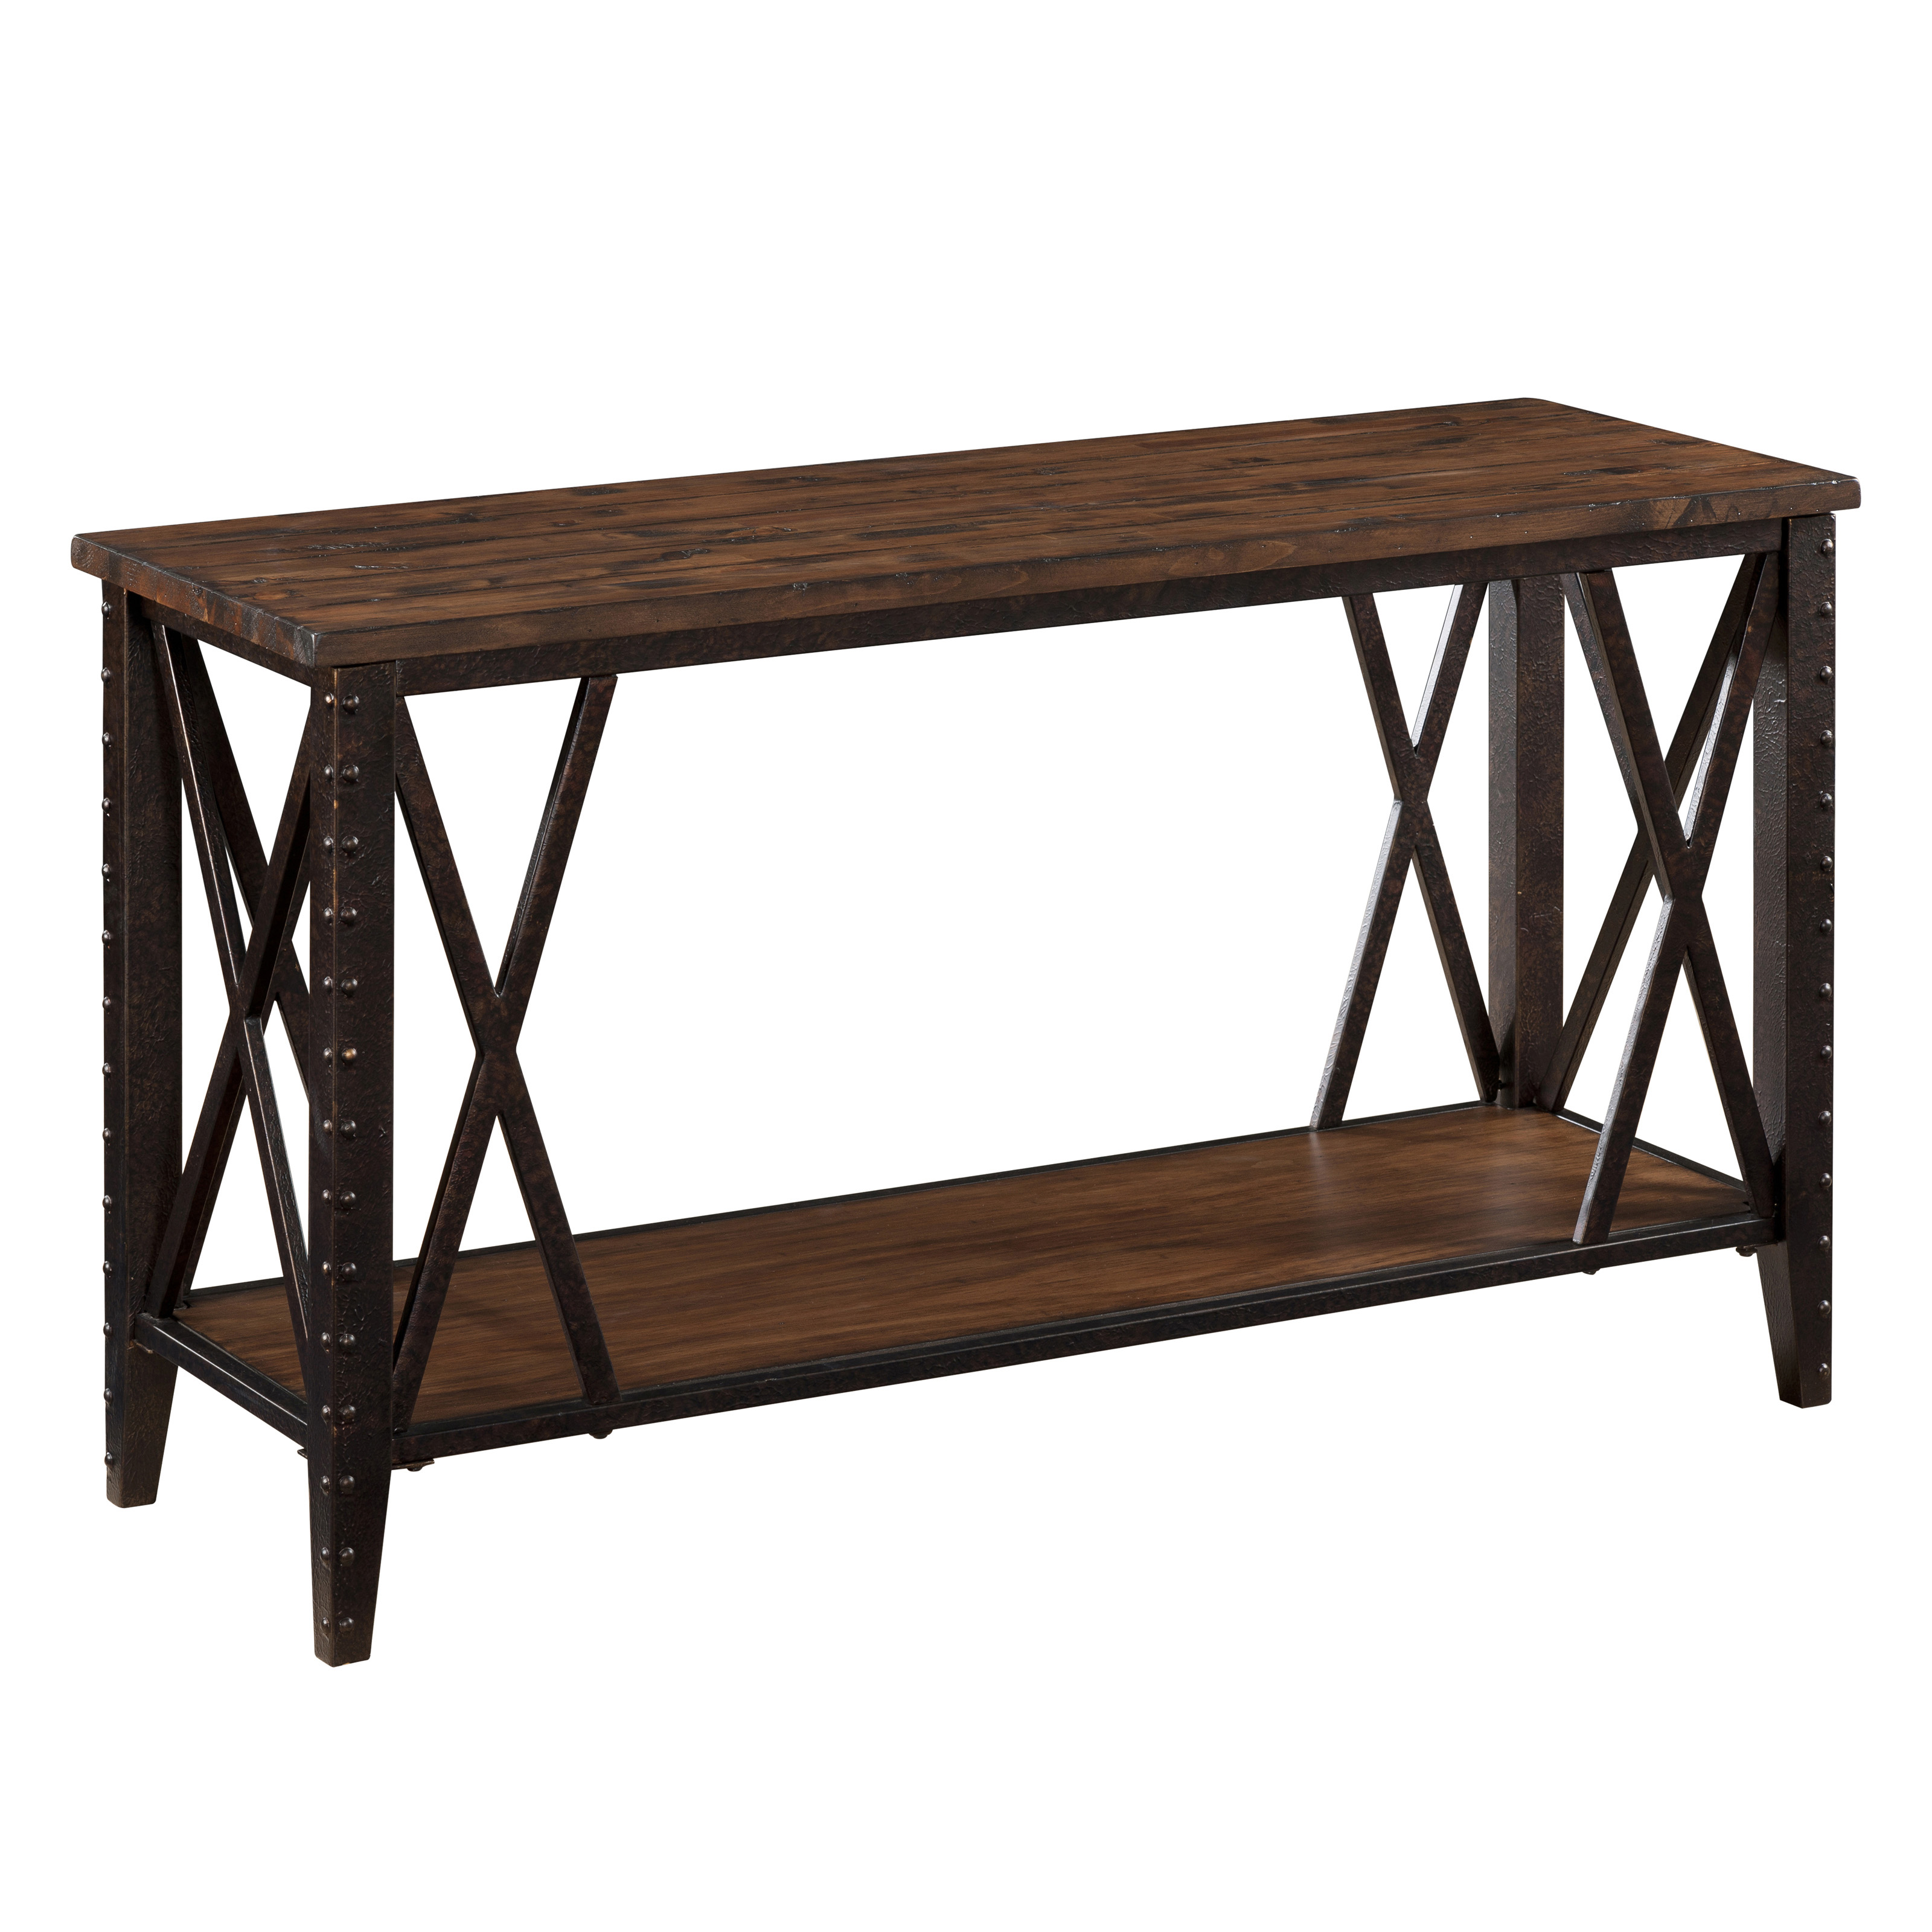 Magnussen fleming wood and metal sofa table rustic pine for Metal and wood console tables